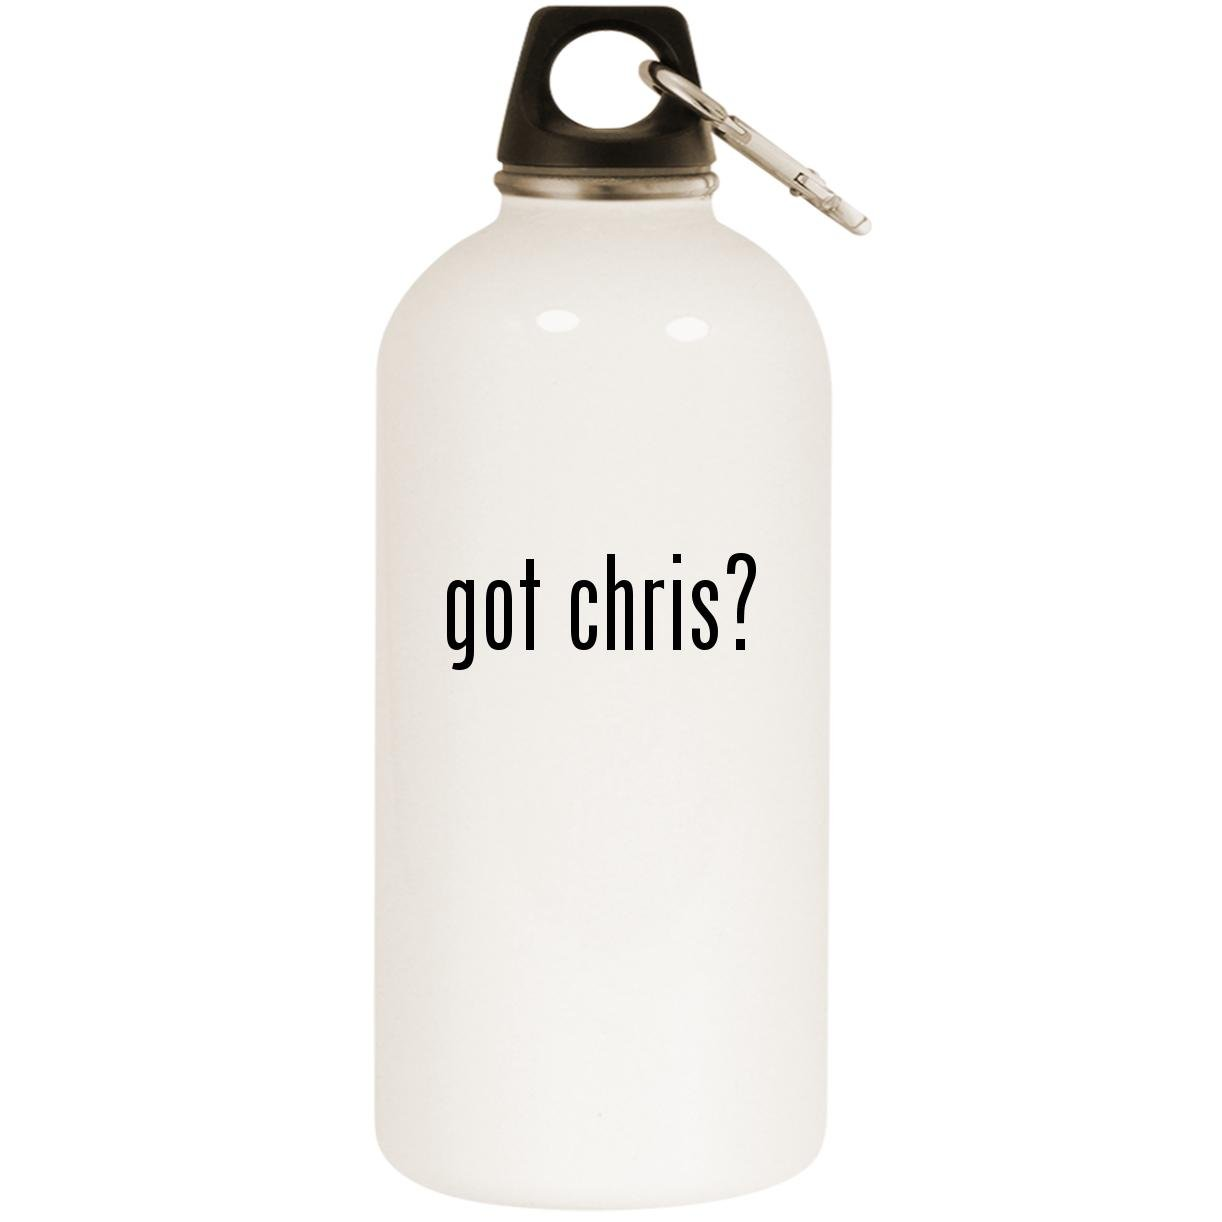 got chris? - White 20oz Stainless Steel Water Bottle with Carabiner